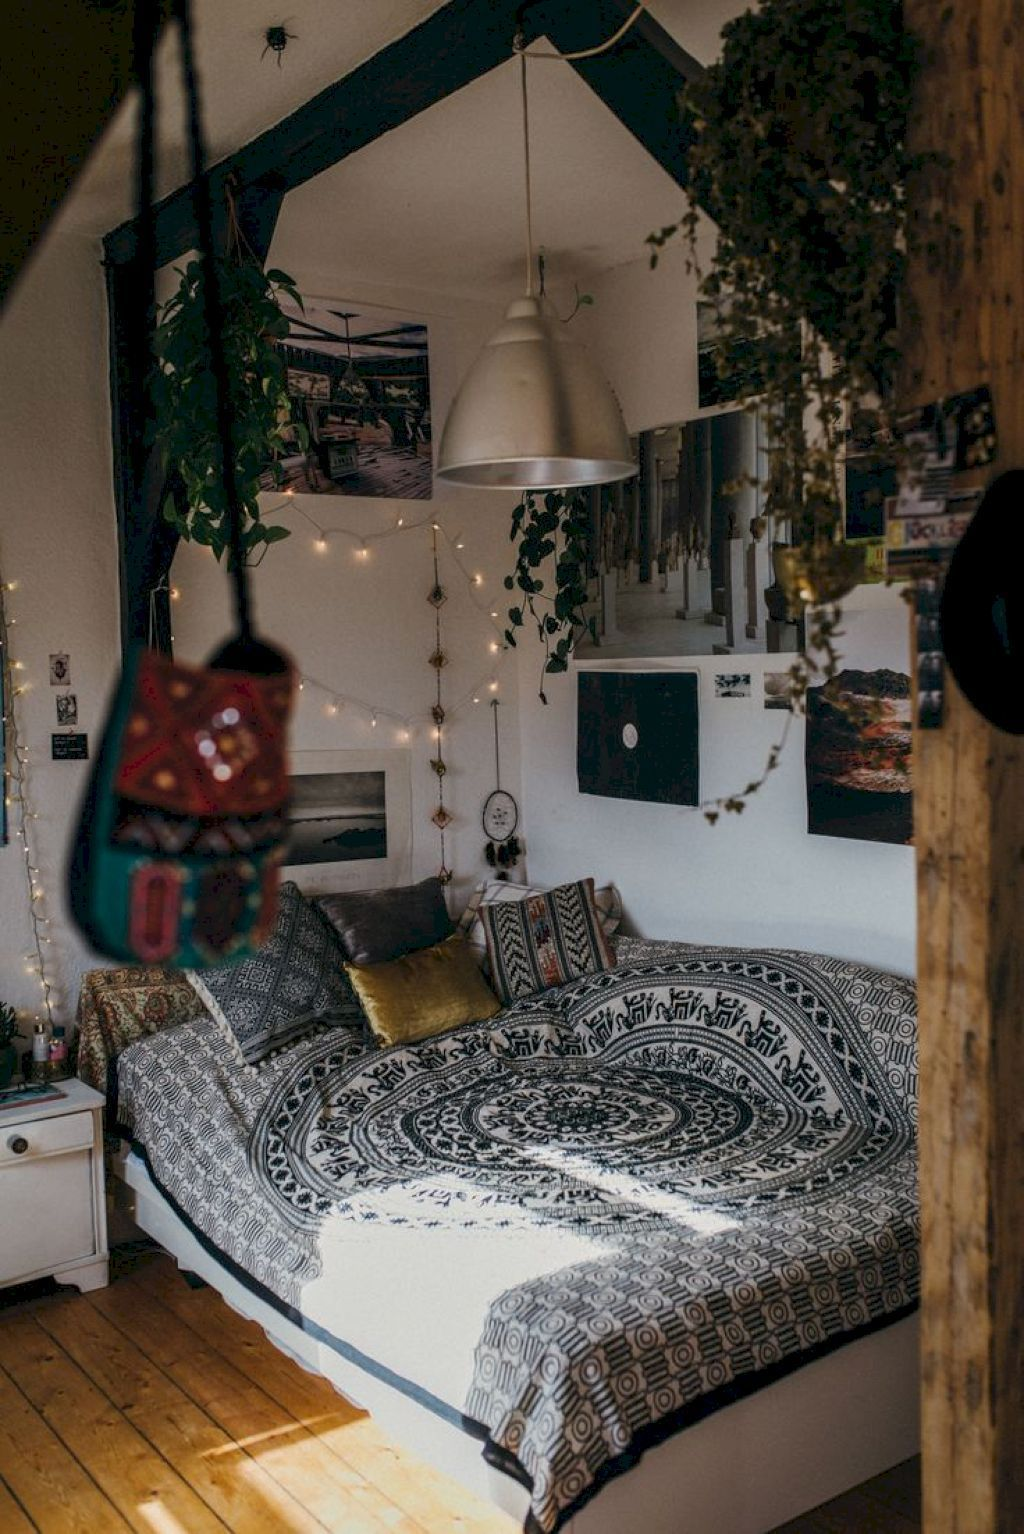 Cool 50 Comfy Boho Style Bedroom Decor And Design Ideas Https://homeylife.